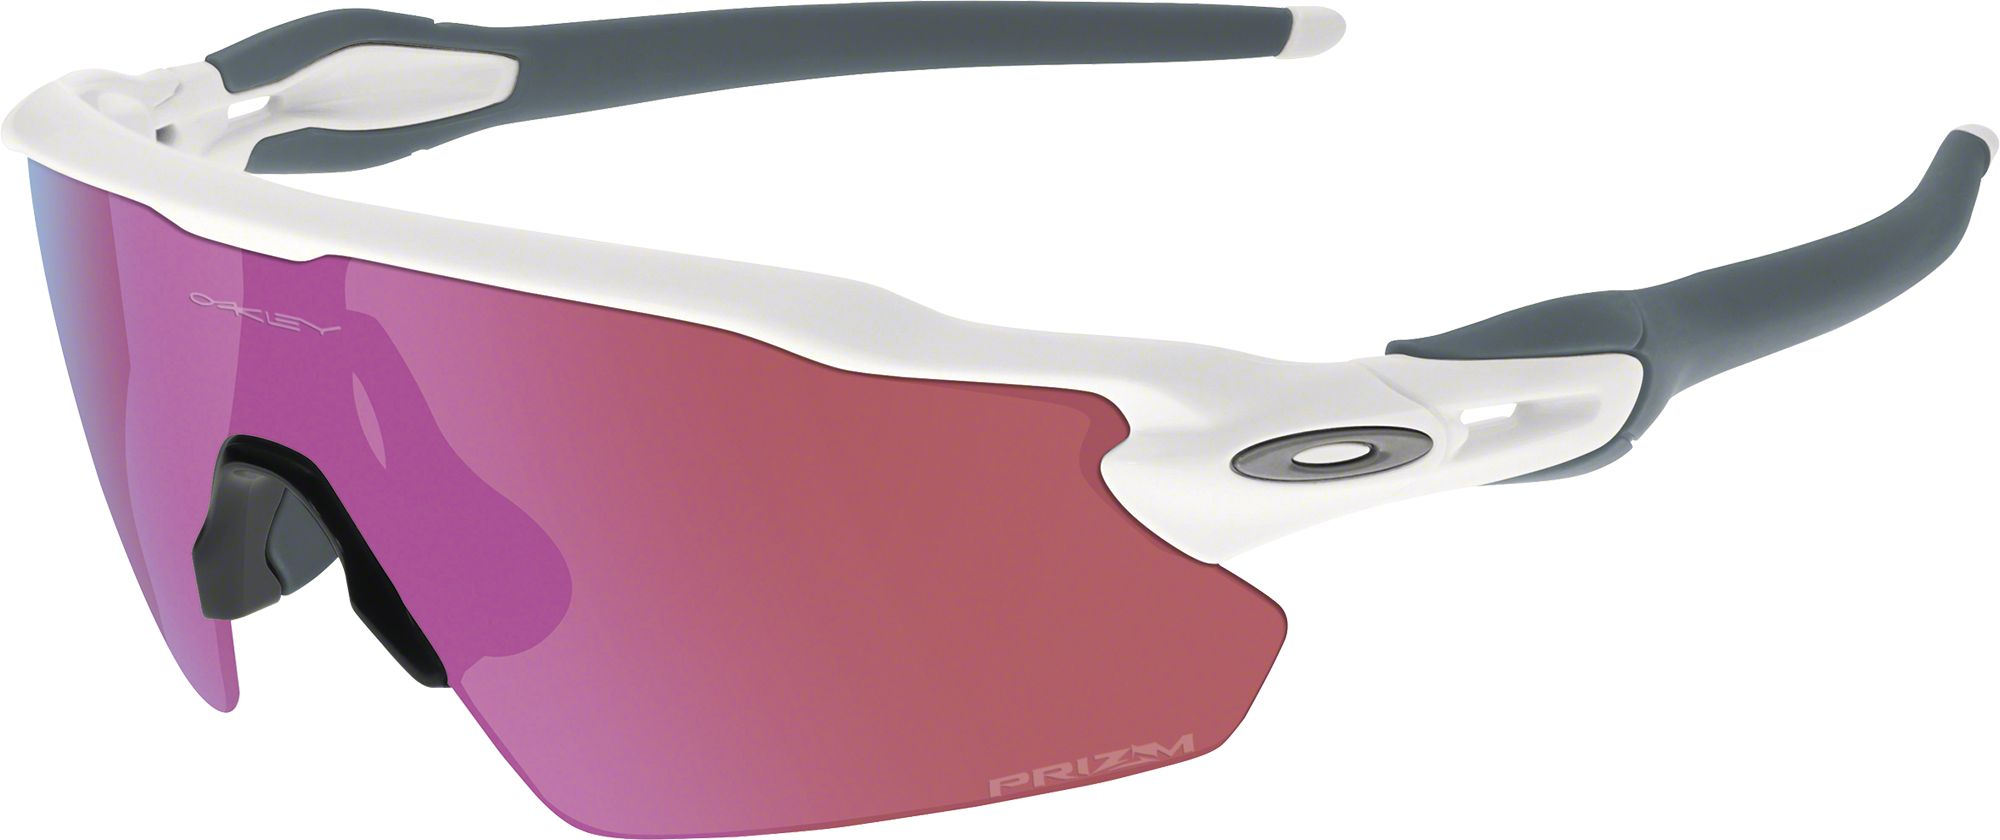 oakley sunglasses academy sports  product image oakley radar ev pitch baseball sunglasses